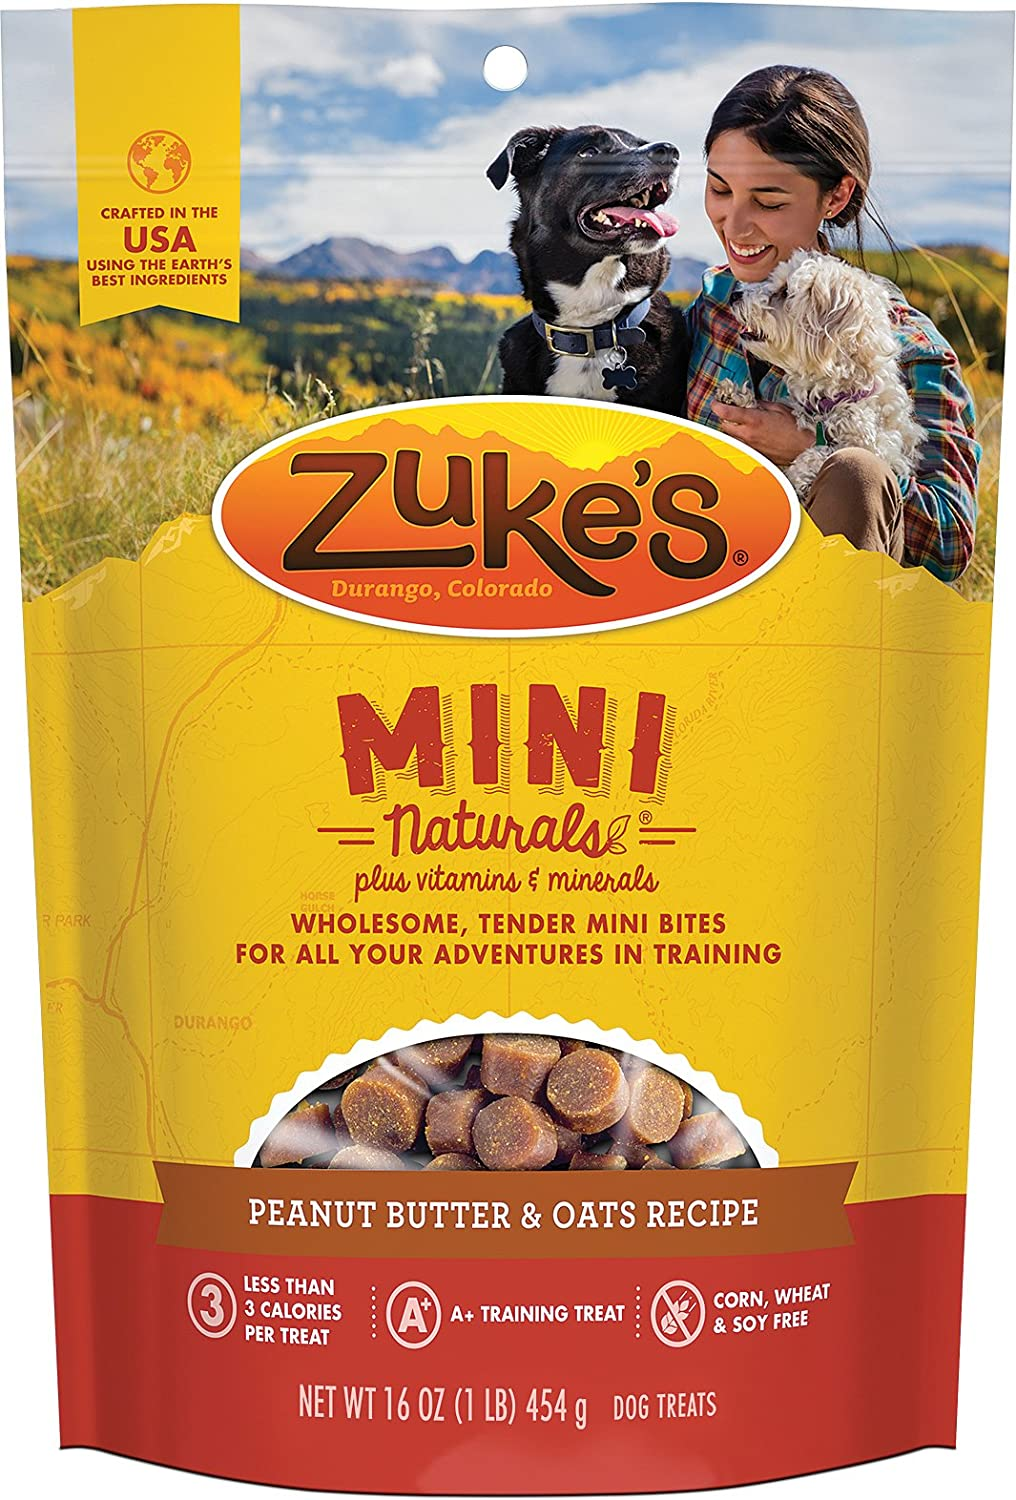 Zuke s Mini Naturals Dog Treats, Fresh Peanut Butter Formula, Pack of 1